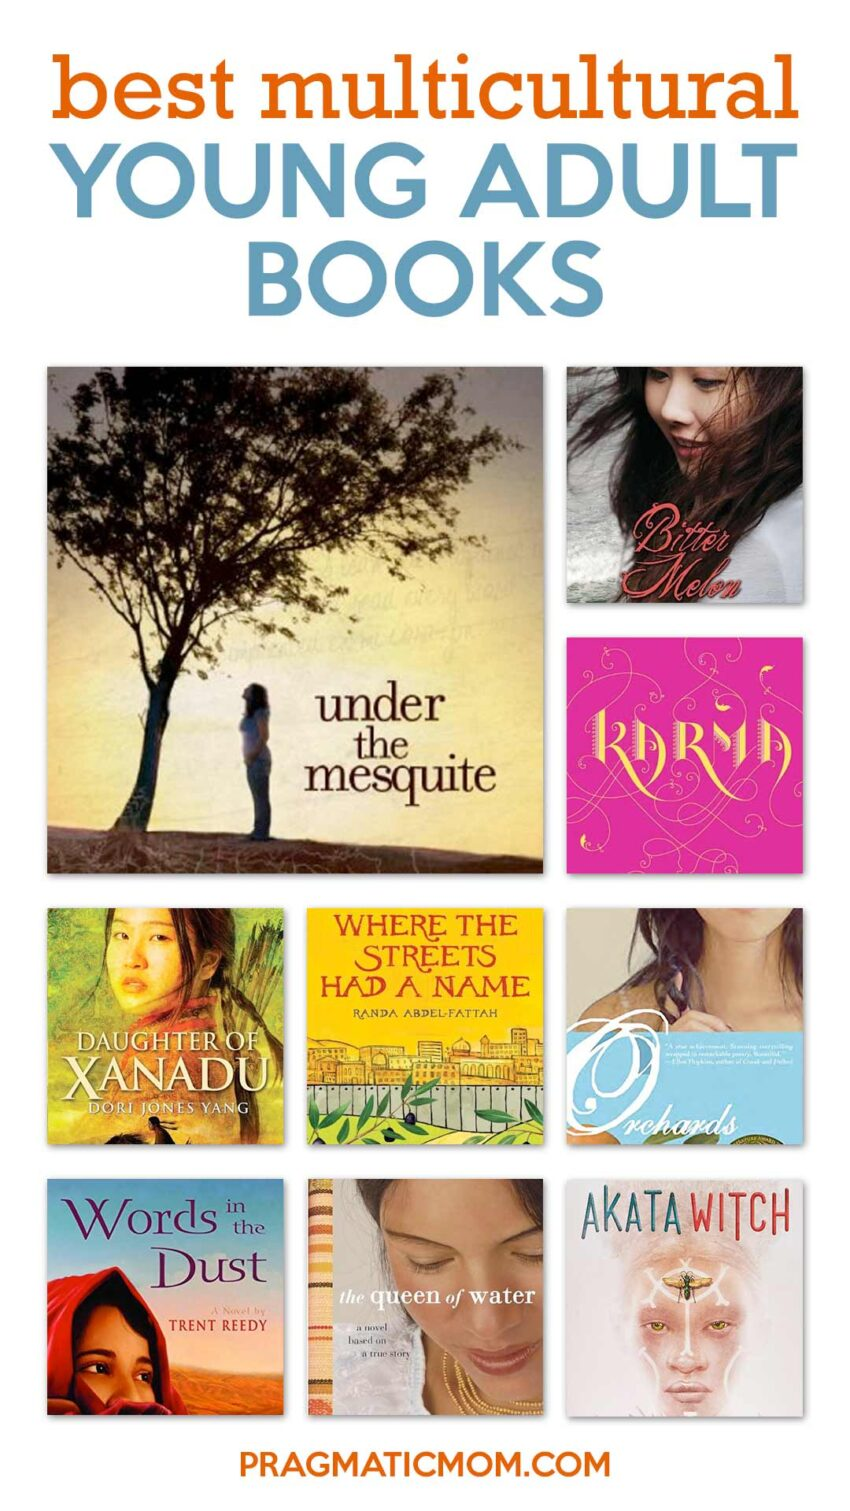 Best Multicultural Young Adult Books